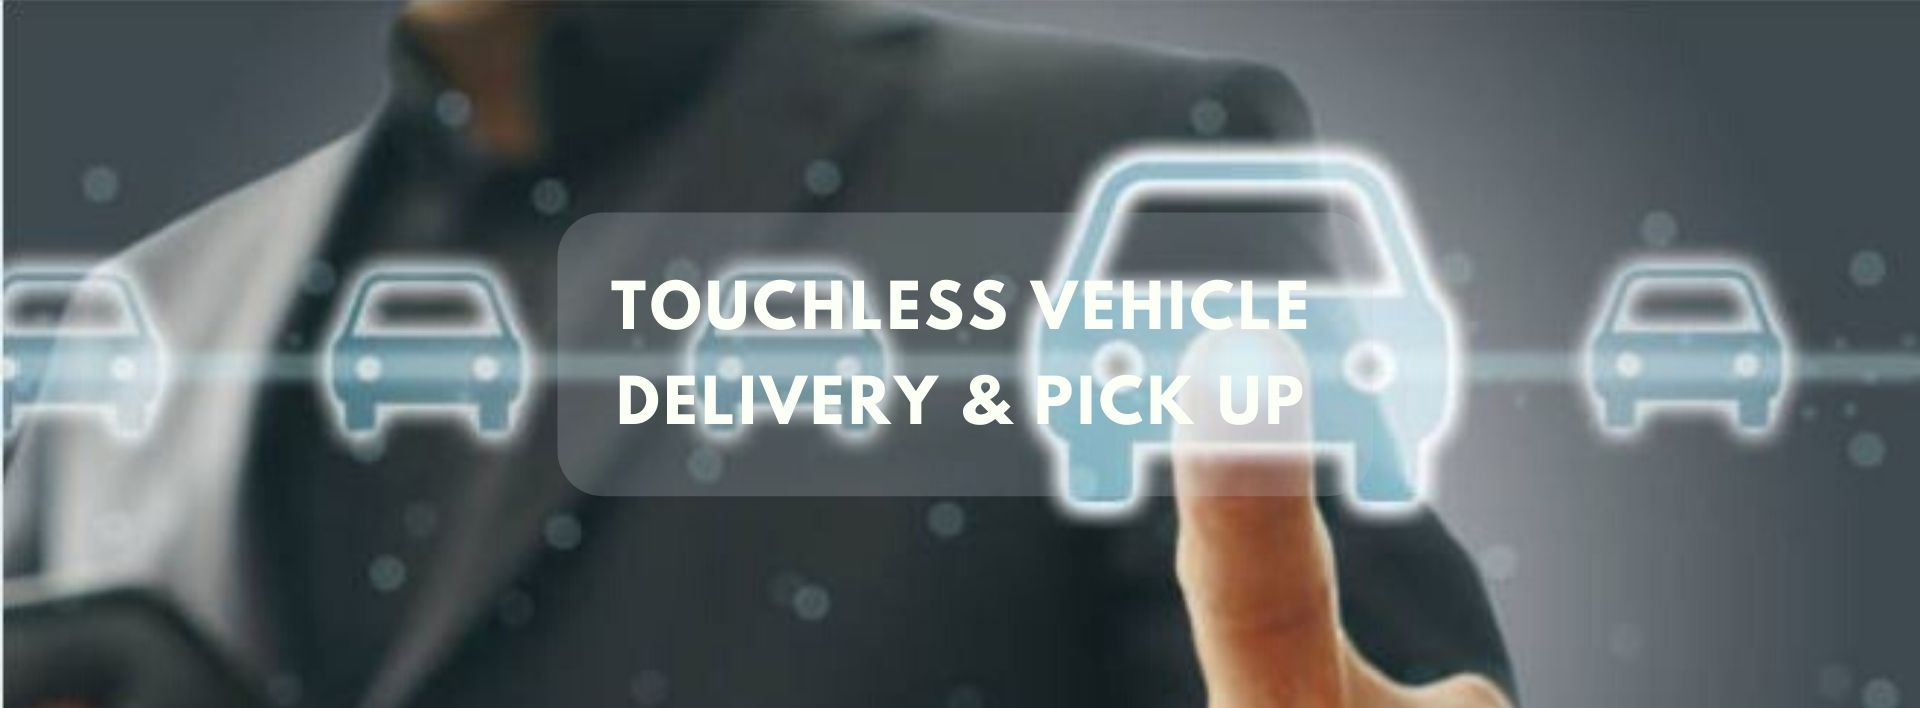 Blacklocks has touchless vehicle delivery and pick up